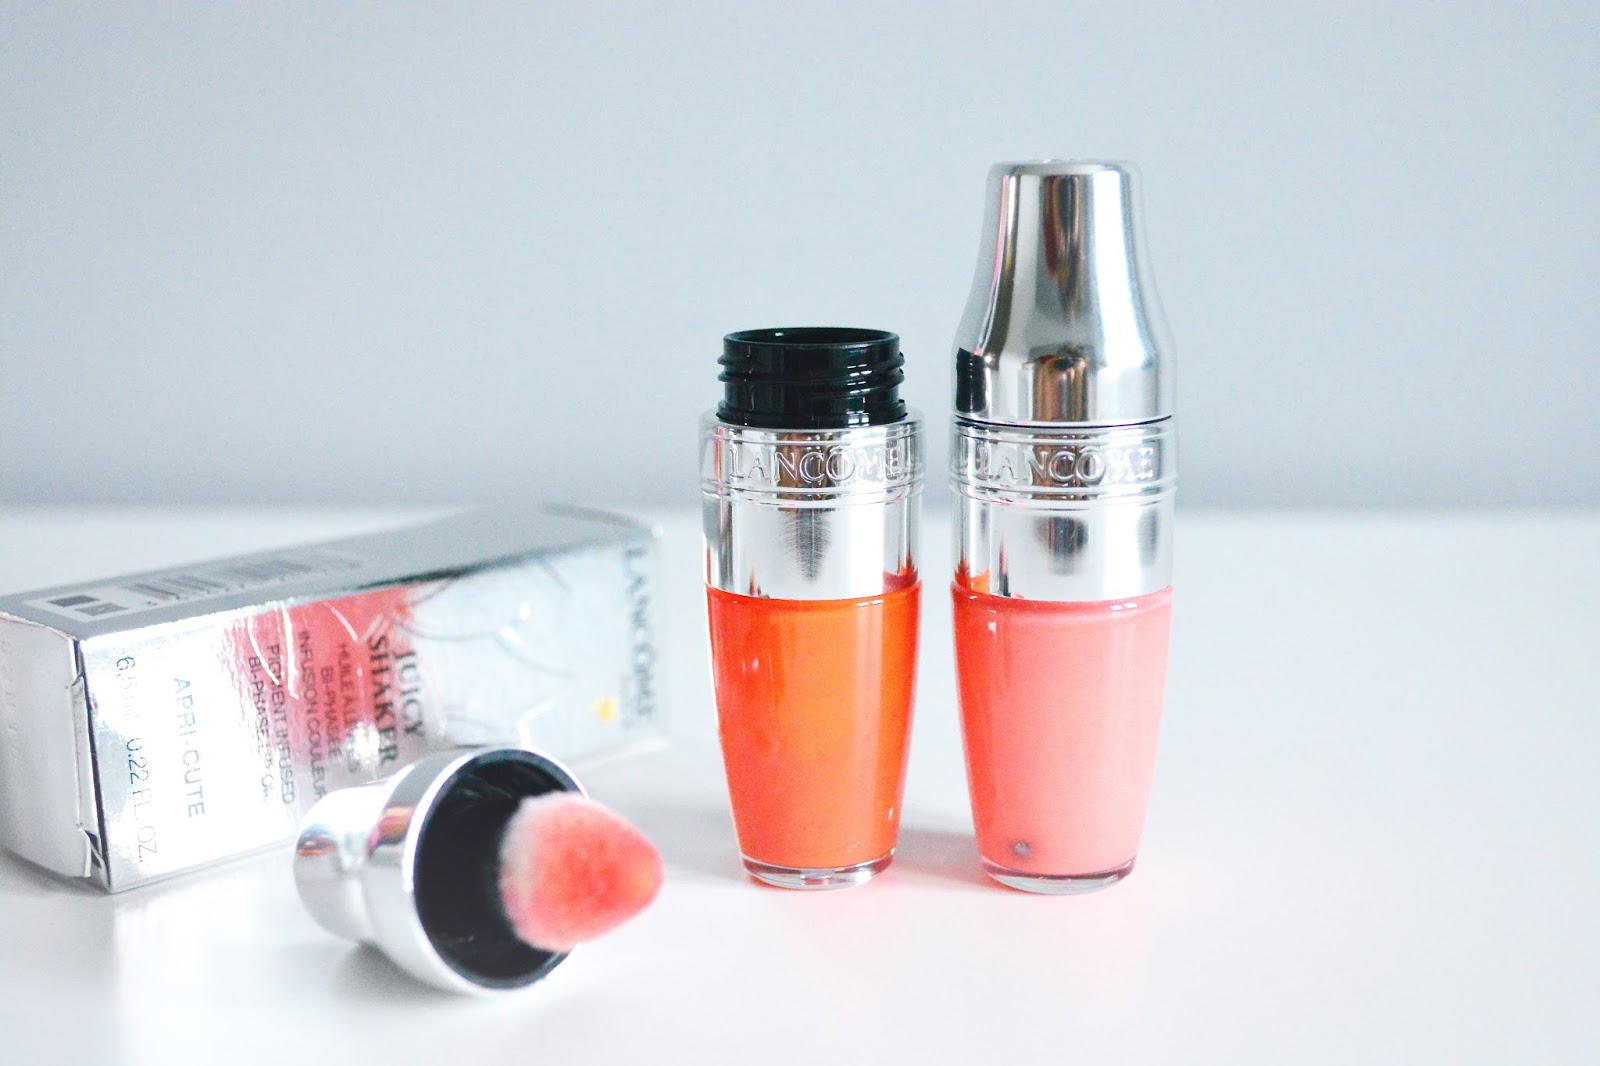 Lancôme Juicy Shakers Review